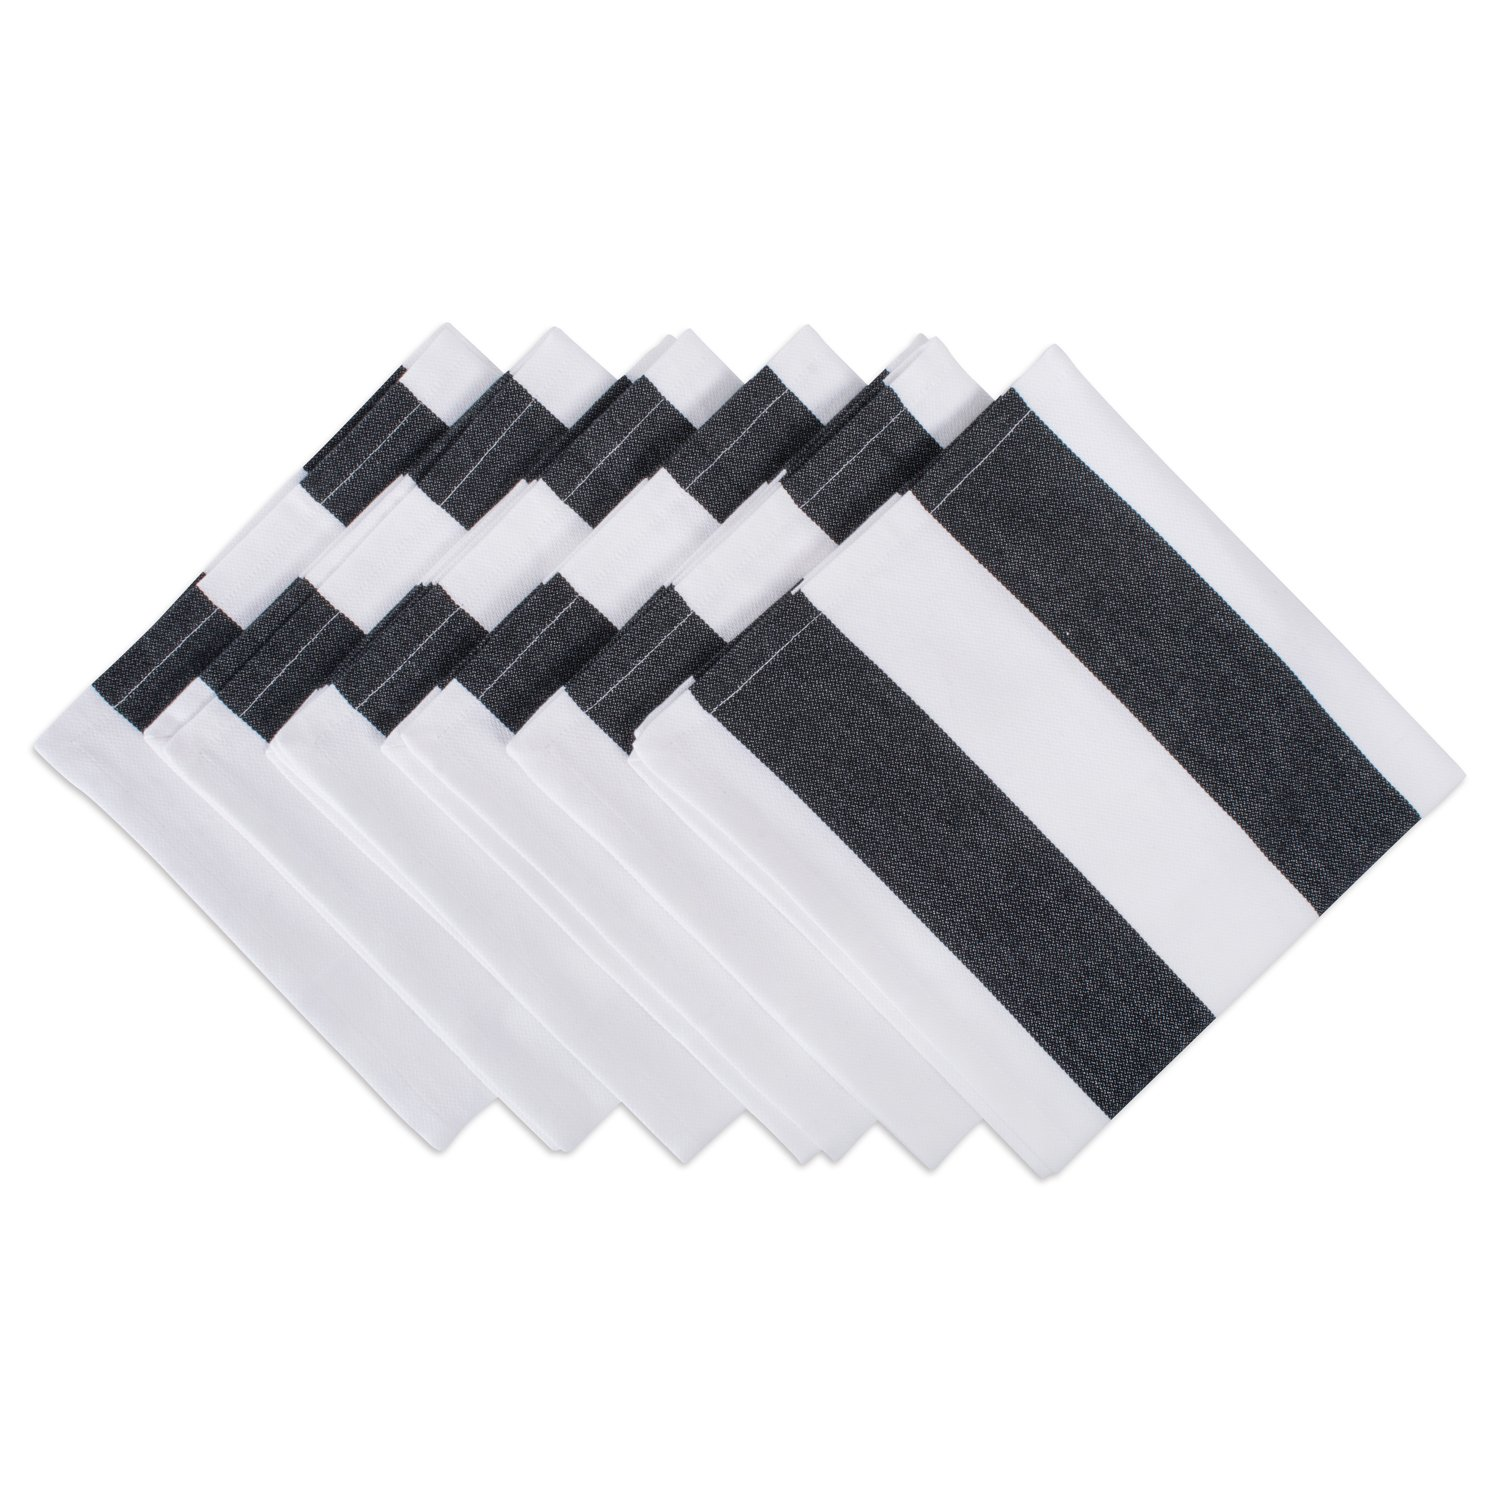 DII Oversized 20x20 Cotton Napkin, Pack of 6, Black & White Cabana Stripe - Perfect for Halloween, Dinner Parties, BBQs and Everyday Use